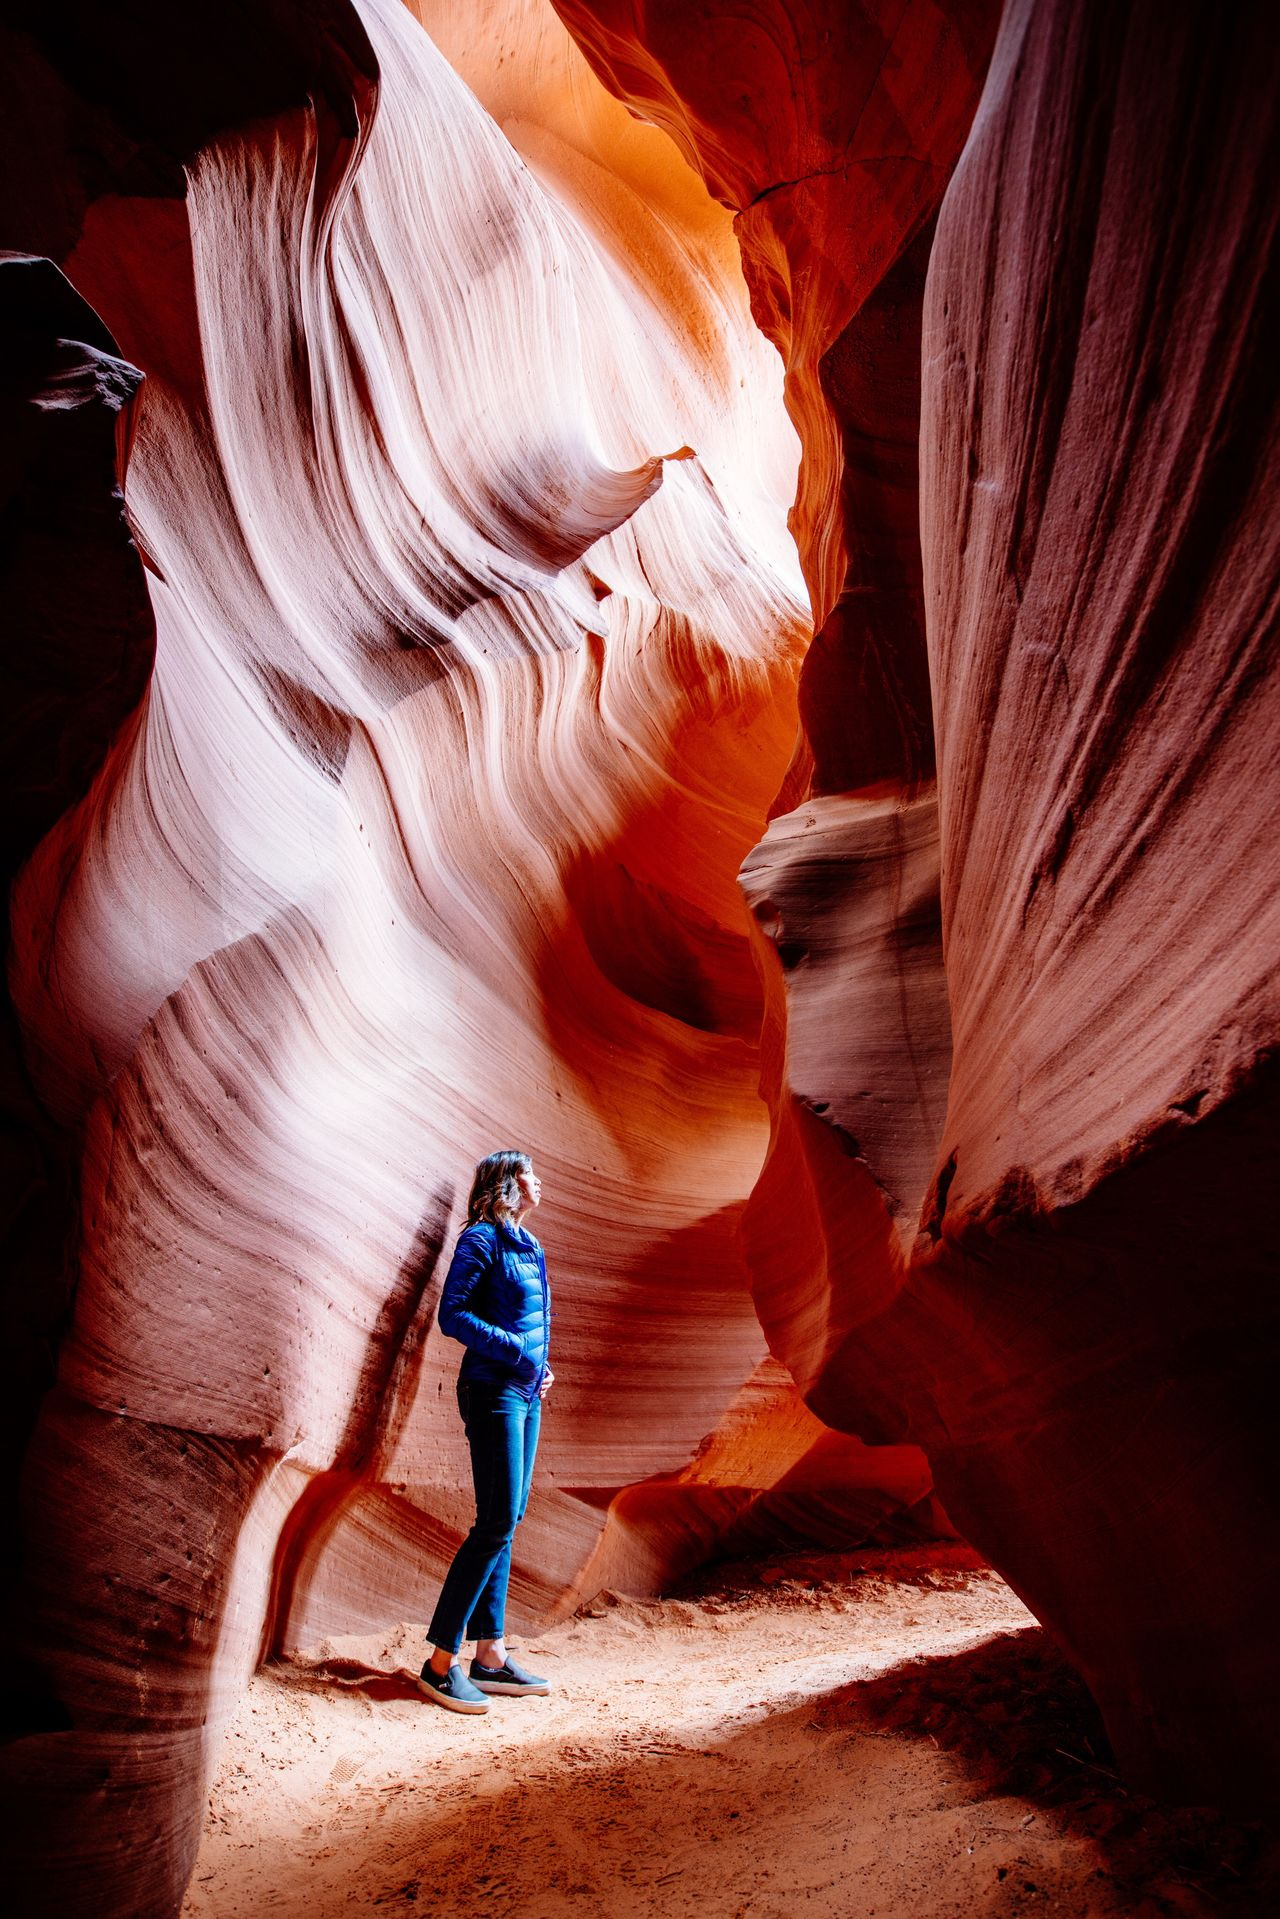 Inside Antelope a Canyon Canyon Rock - Object Rock Formation Geology Travel One Person Tourism Full Length Cave Travel Destinations People Adult Physical Geography Adults Only Exploration Adventure Beauty In Nature Vacations Landscape Waterfall The Great Outdoors - 2017 EyeEm Awards